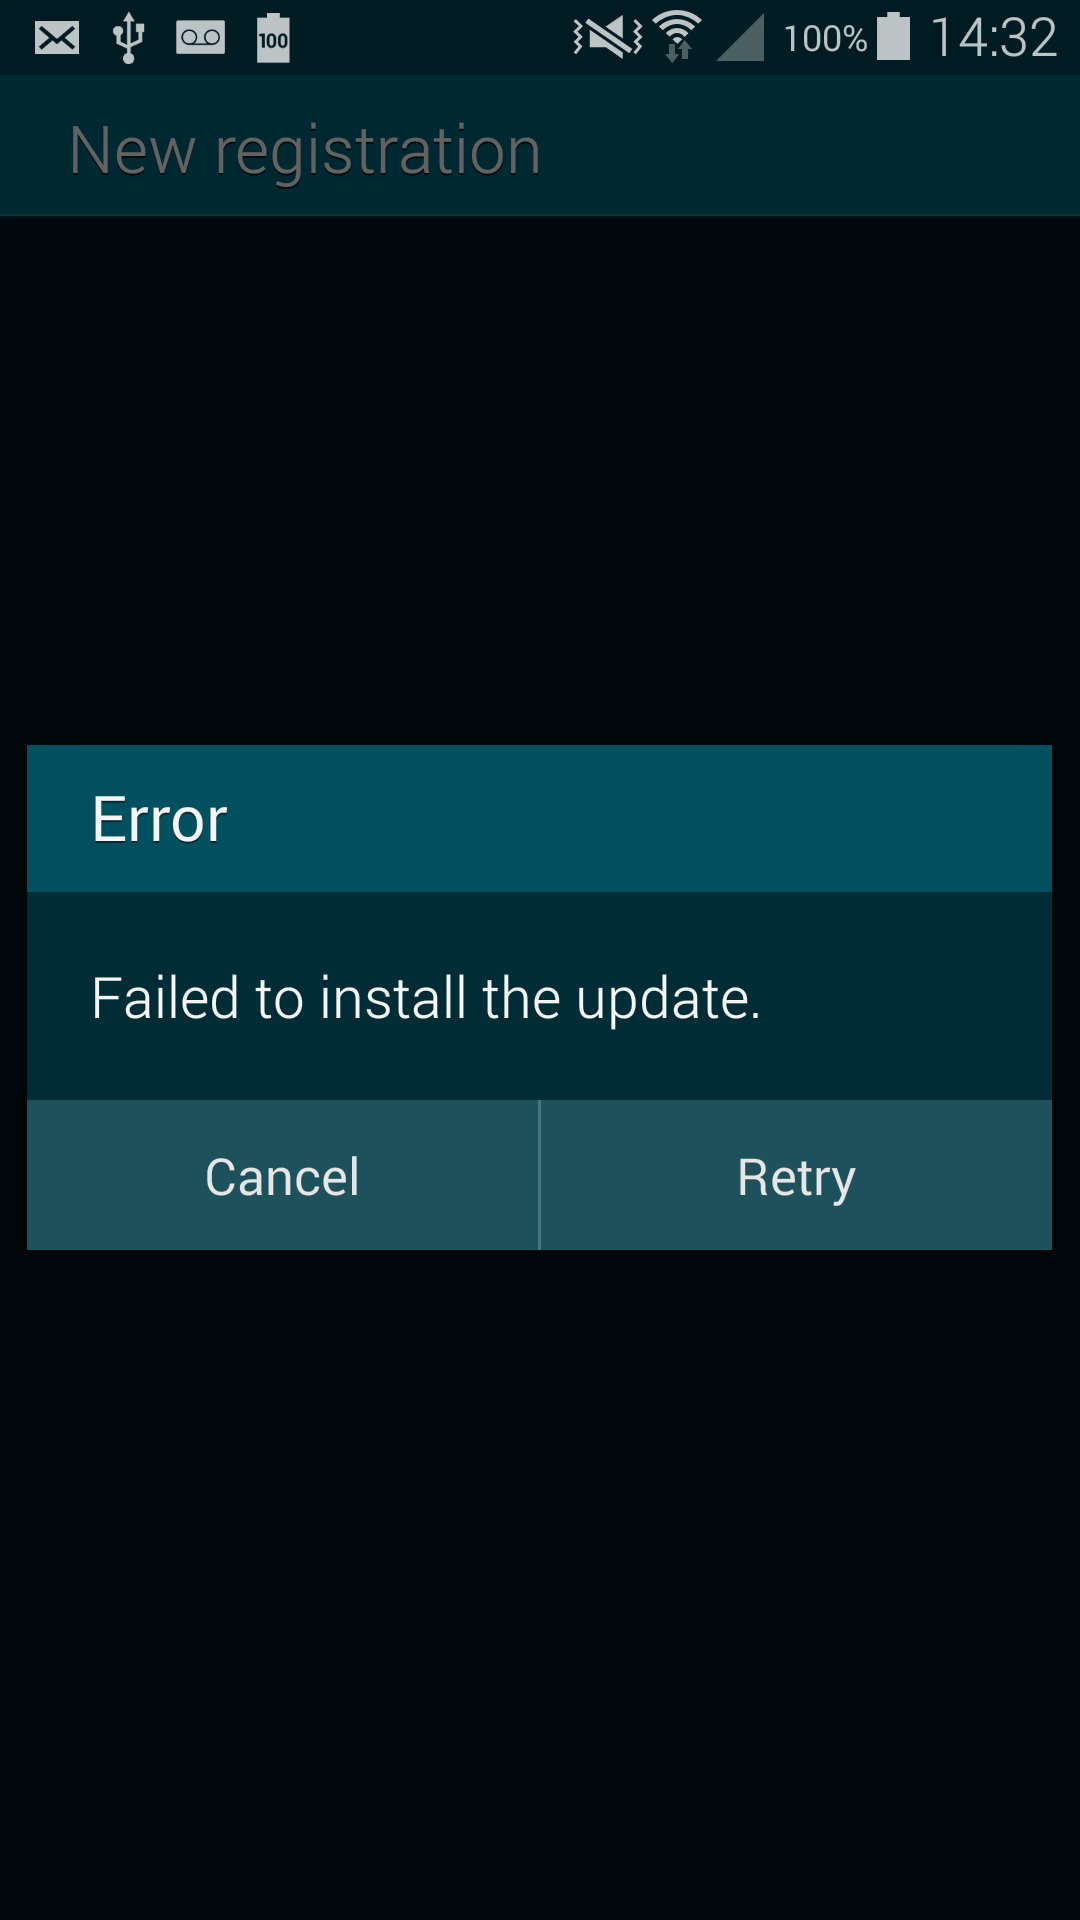 Abusing Samsung KNOX to remotely install a malicious application